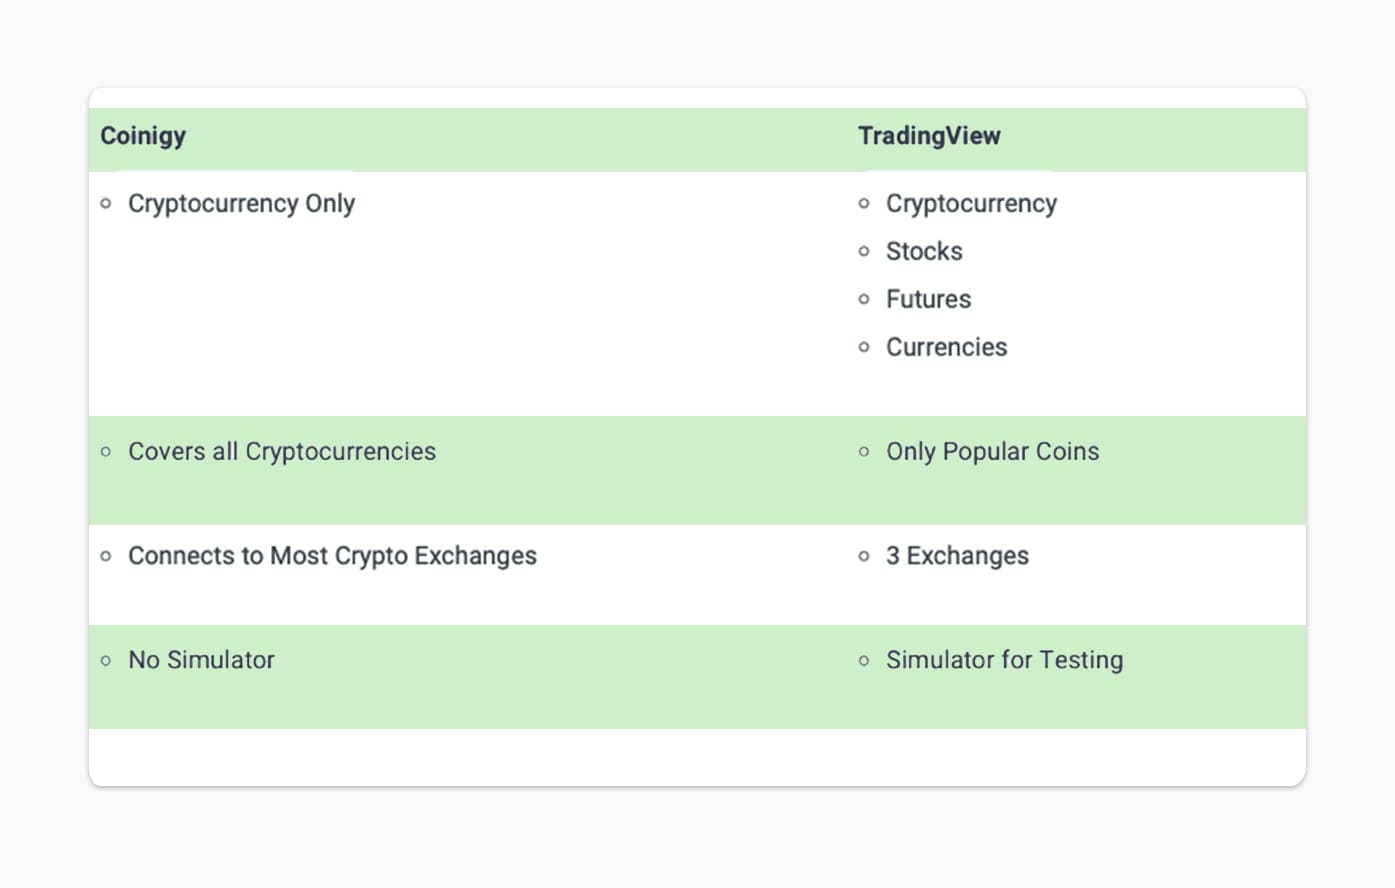 coinigy vs tradingview